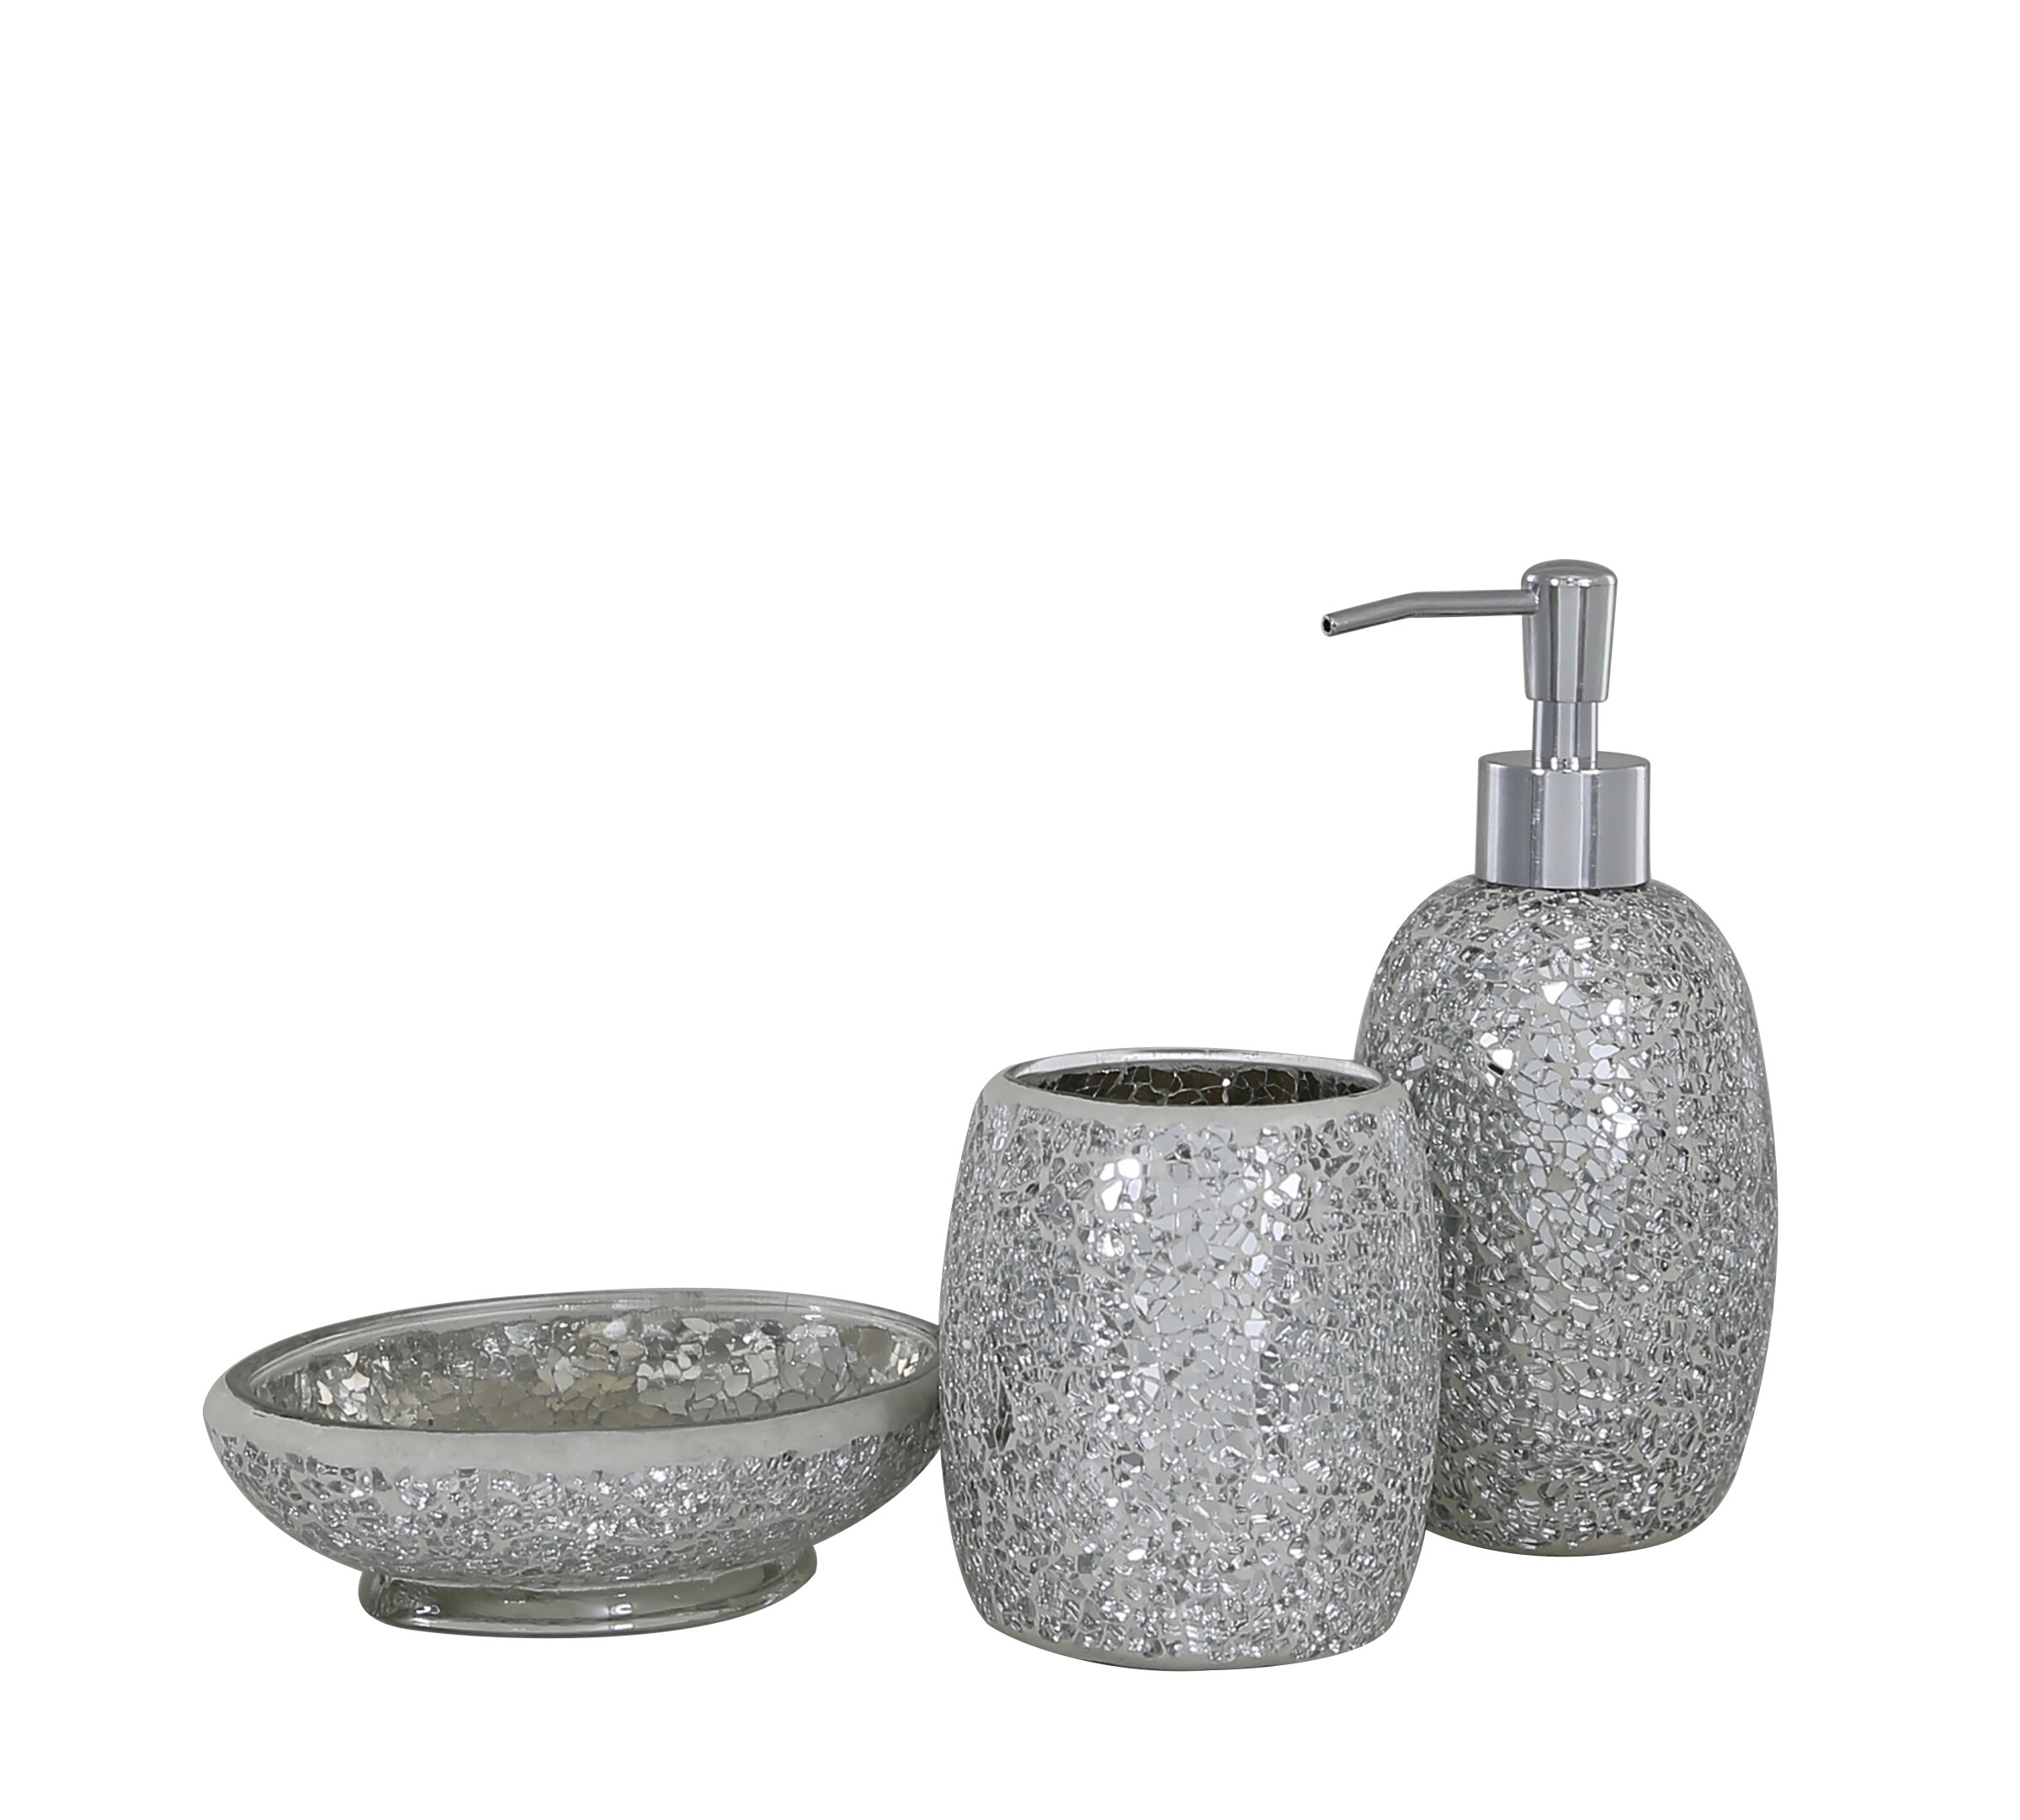 Belfry Bathroom Mosaic 3 Piece Bathroom Accessories Set & Reviews | Wayfair.co.uk